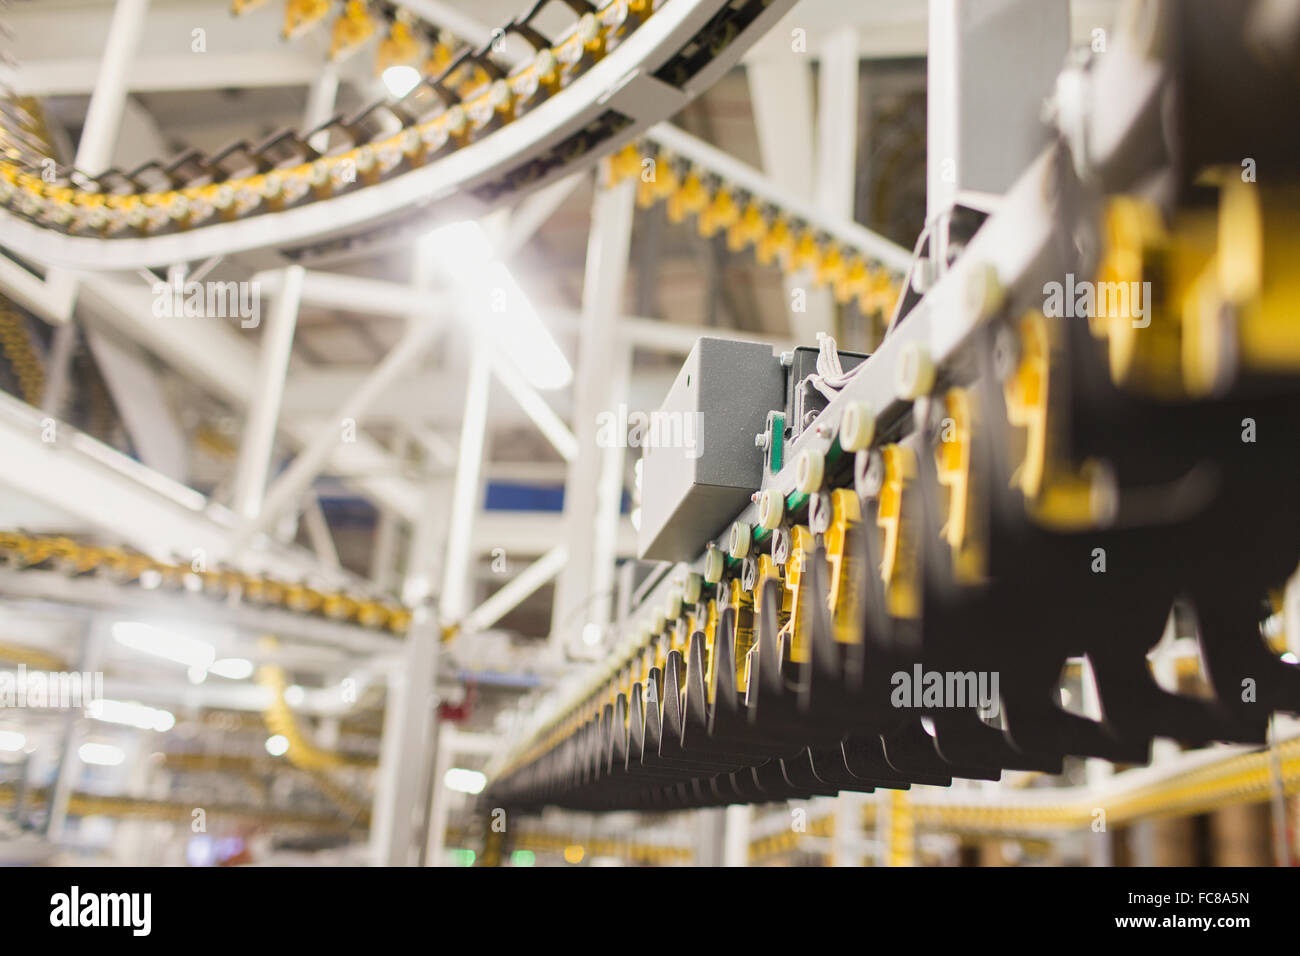 Printing press conveyor belts in printing plant - Stock Image